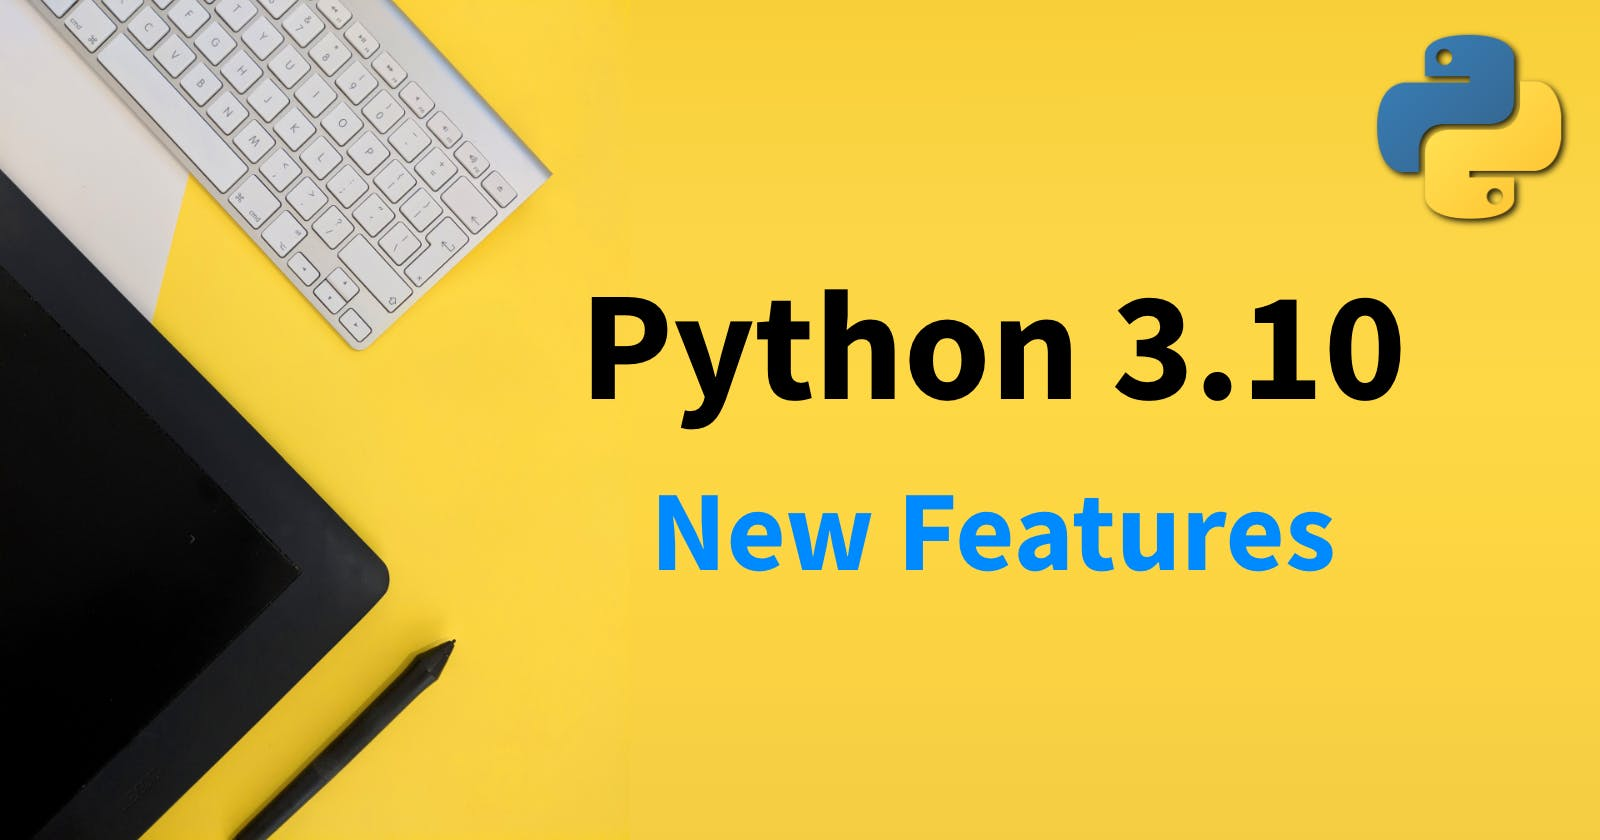 New Features In Python 3.10 You Should Know